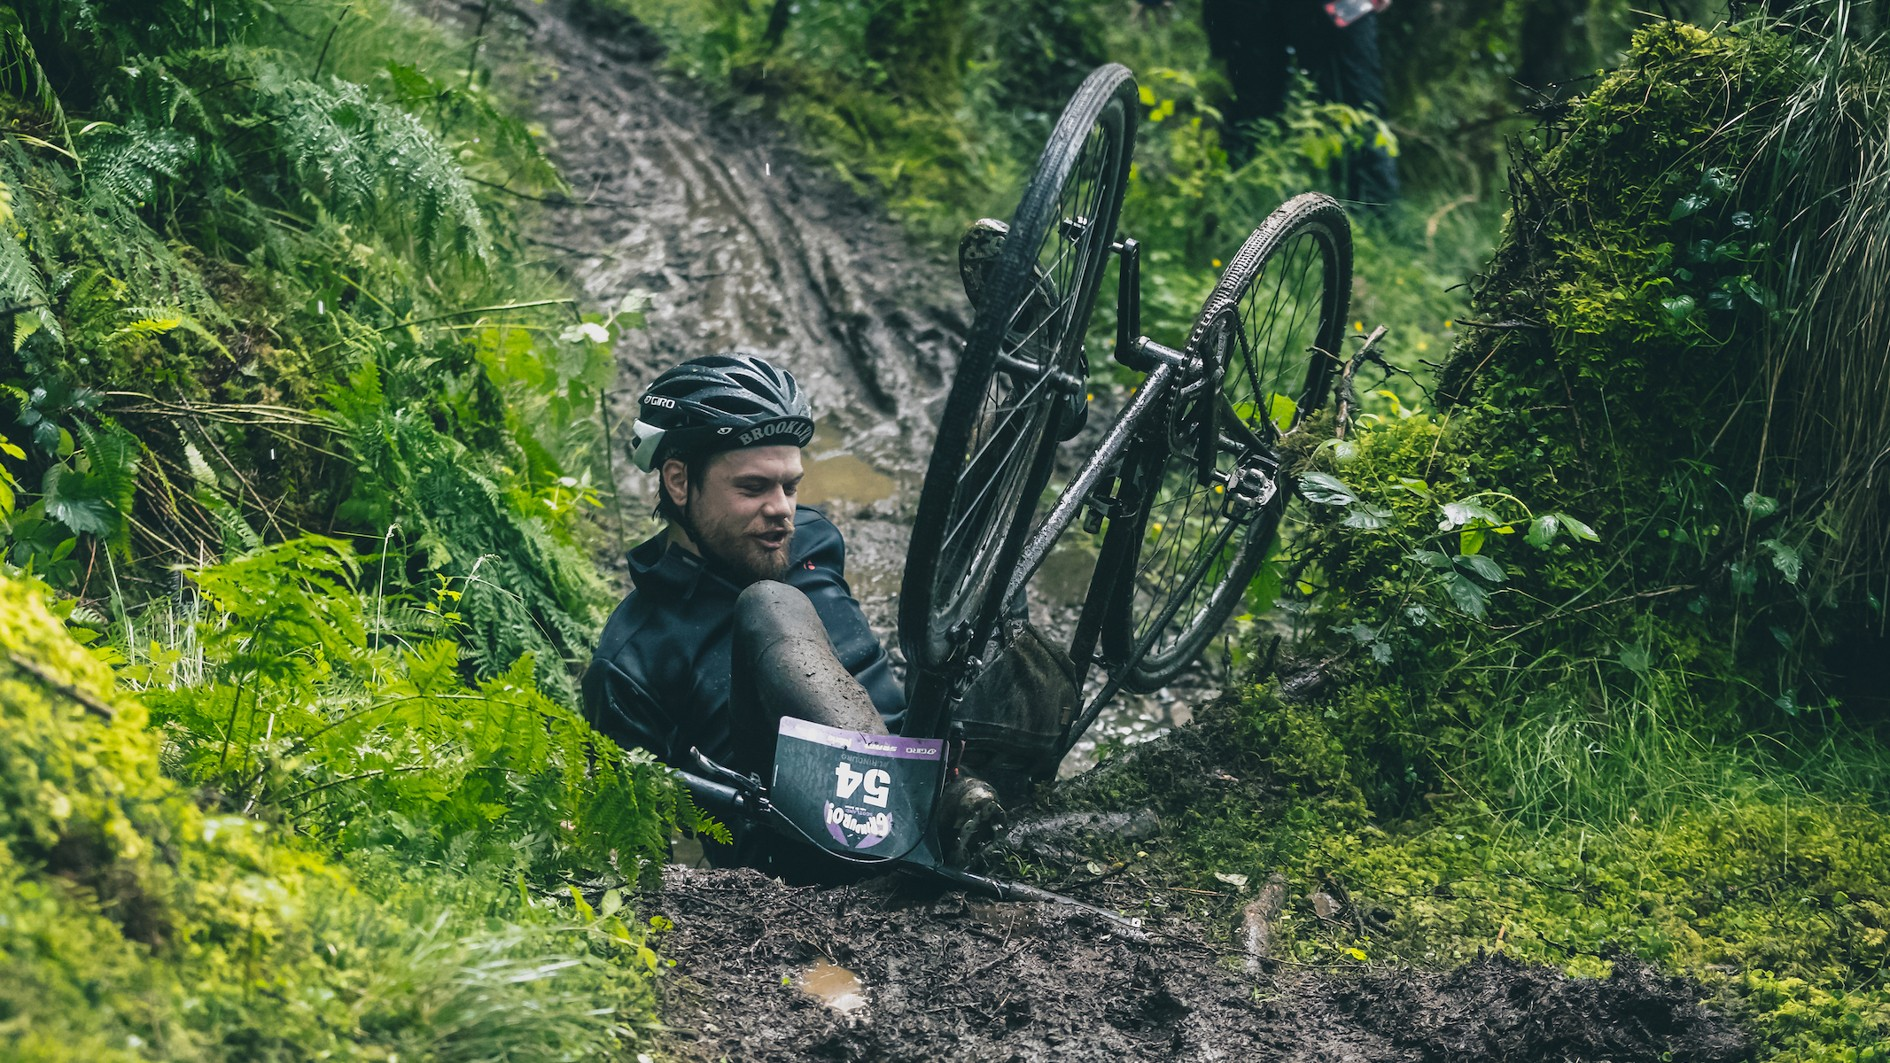 Regardless of what bike you were riding at the Grinduro, you were guaranteed to bin it at least once. Sorry for including this one Graham...